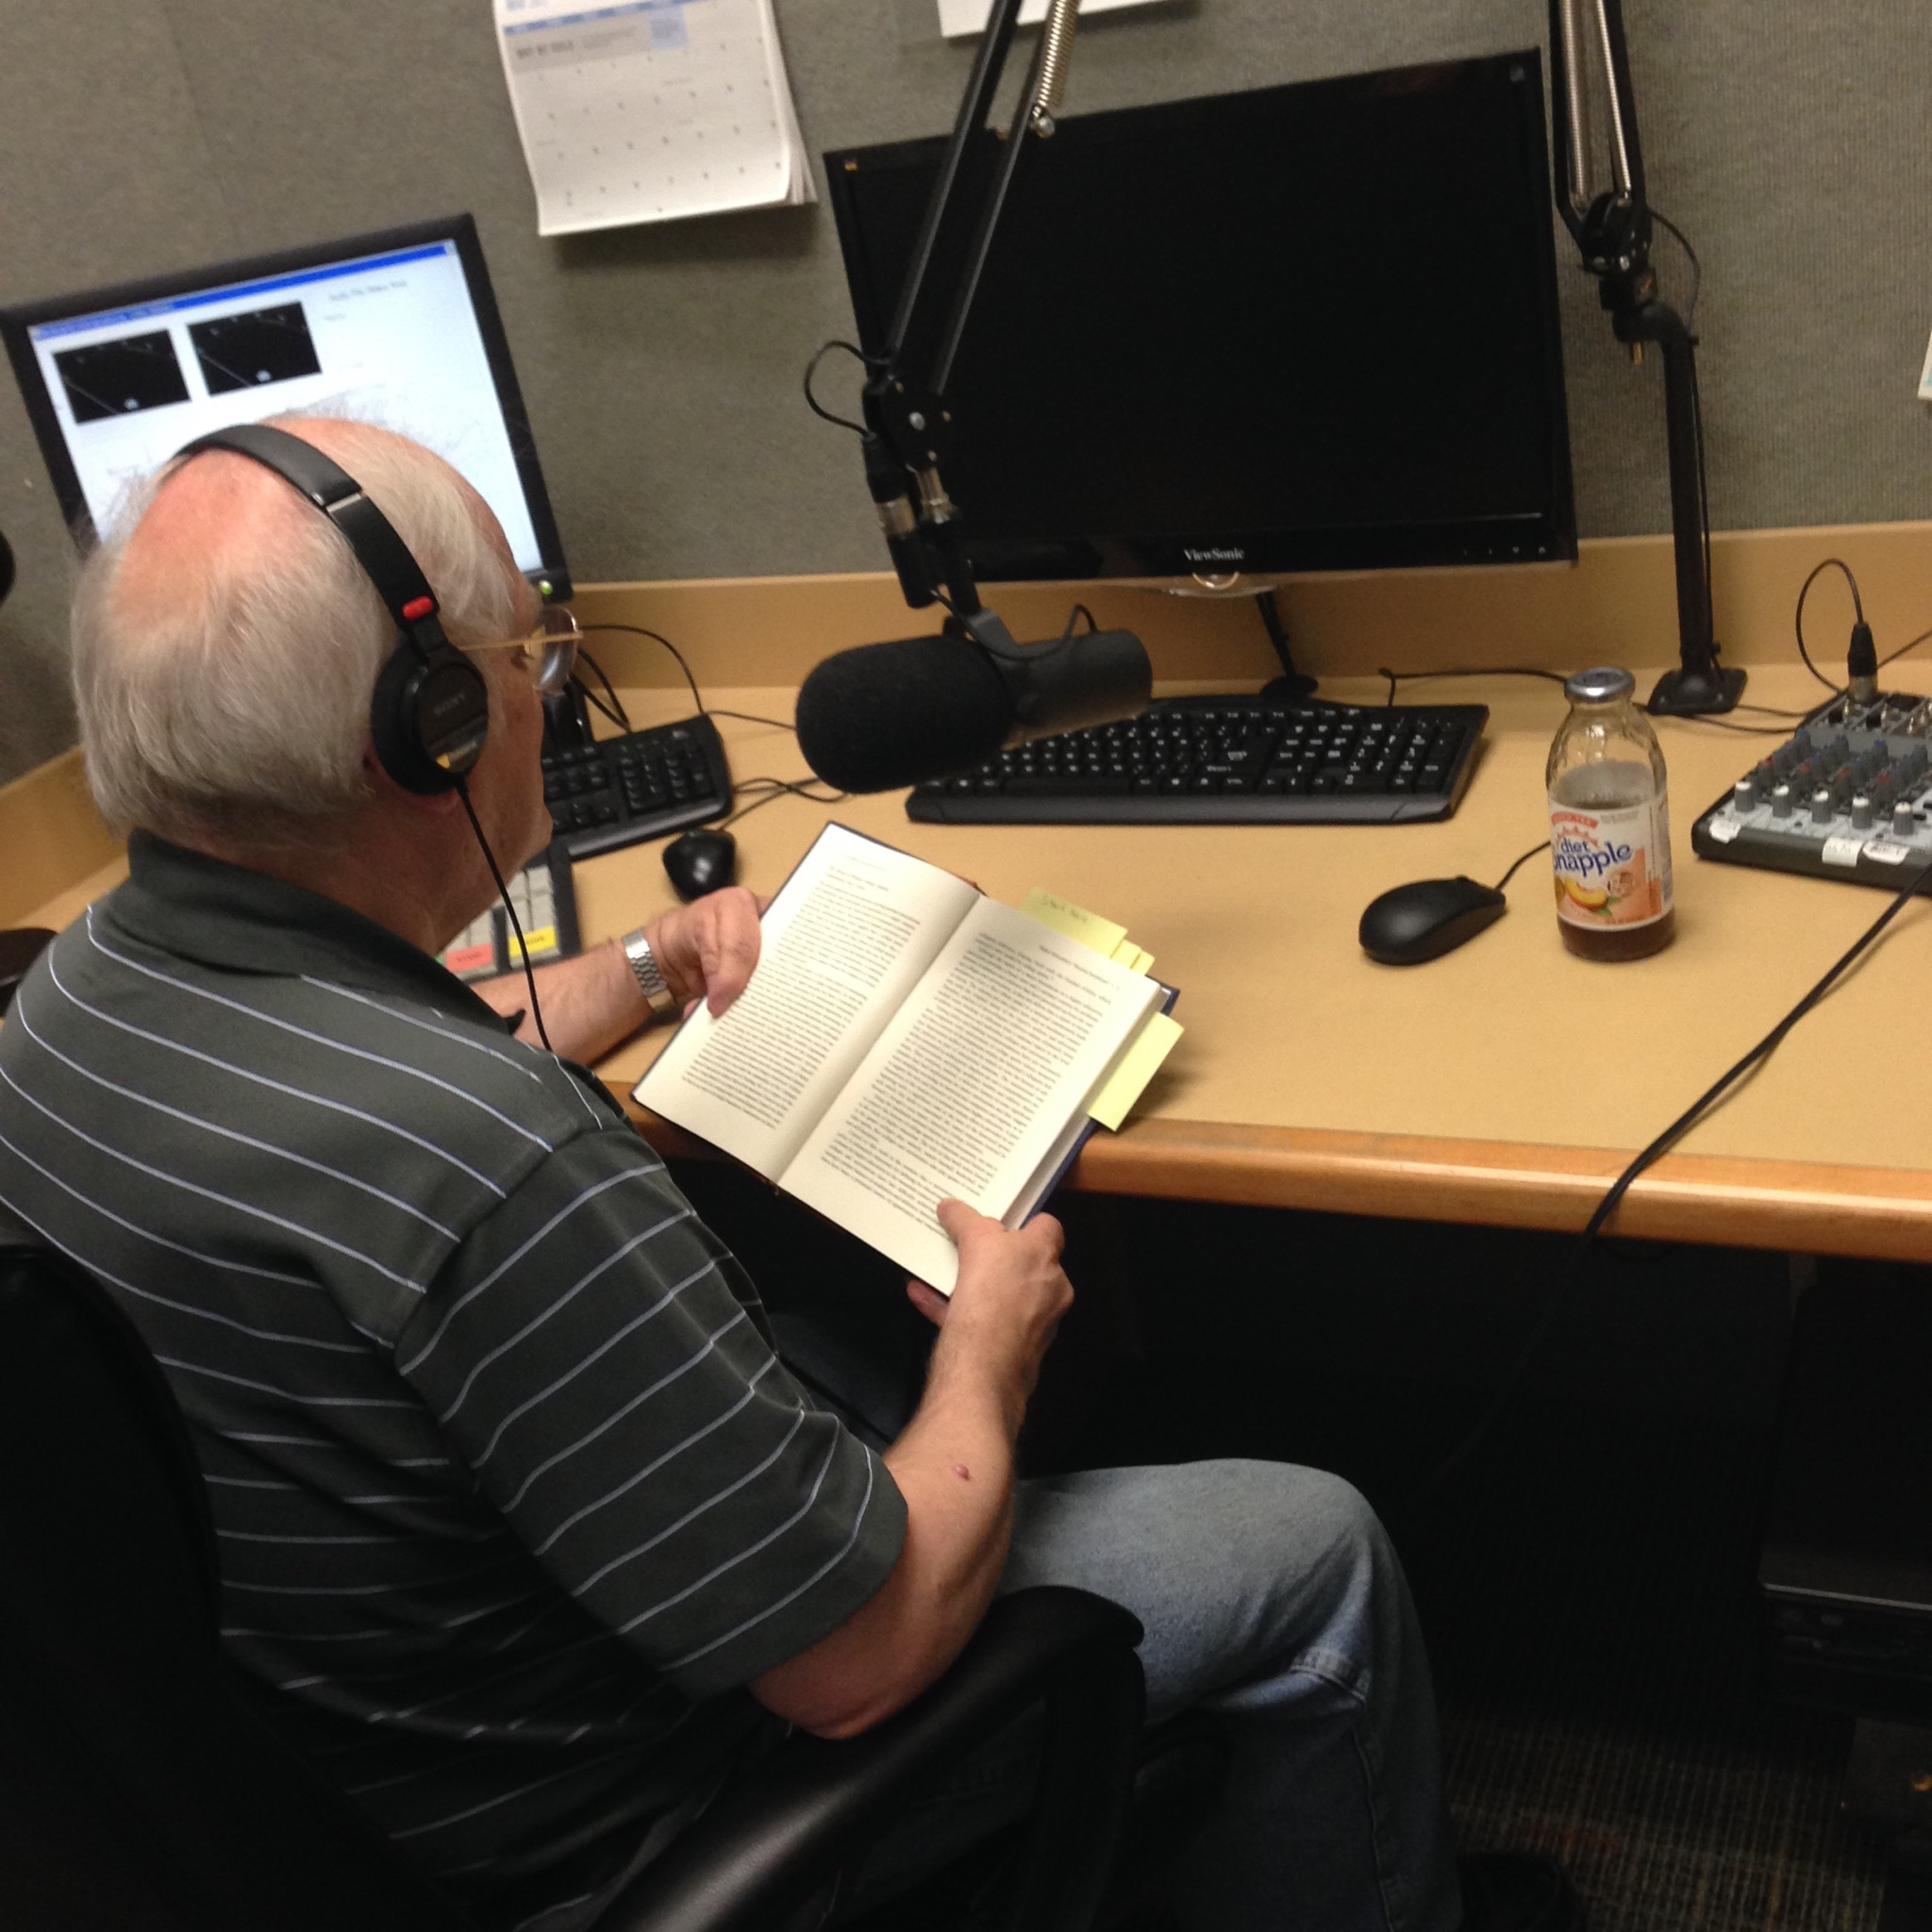 White haired man in gray and white striped shirt reading a book in a recording booth.